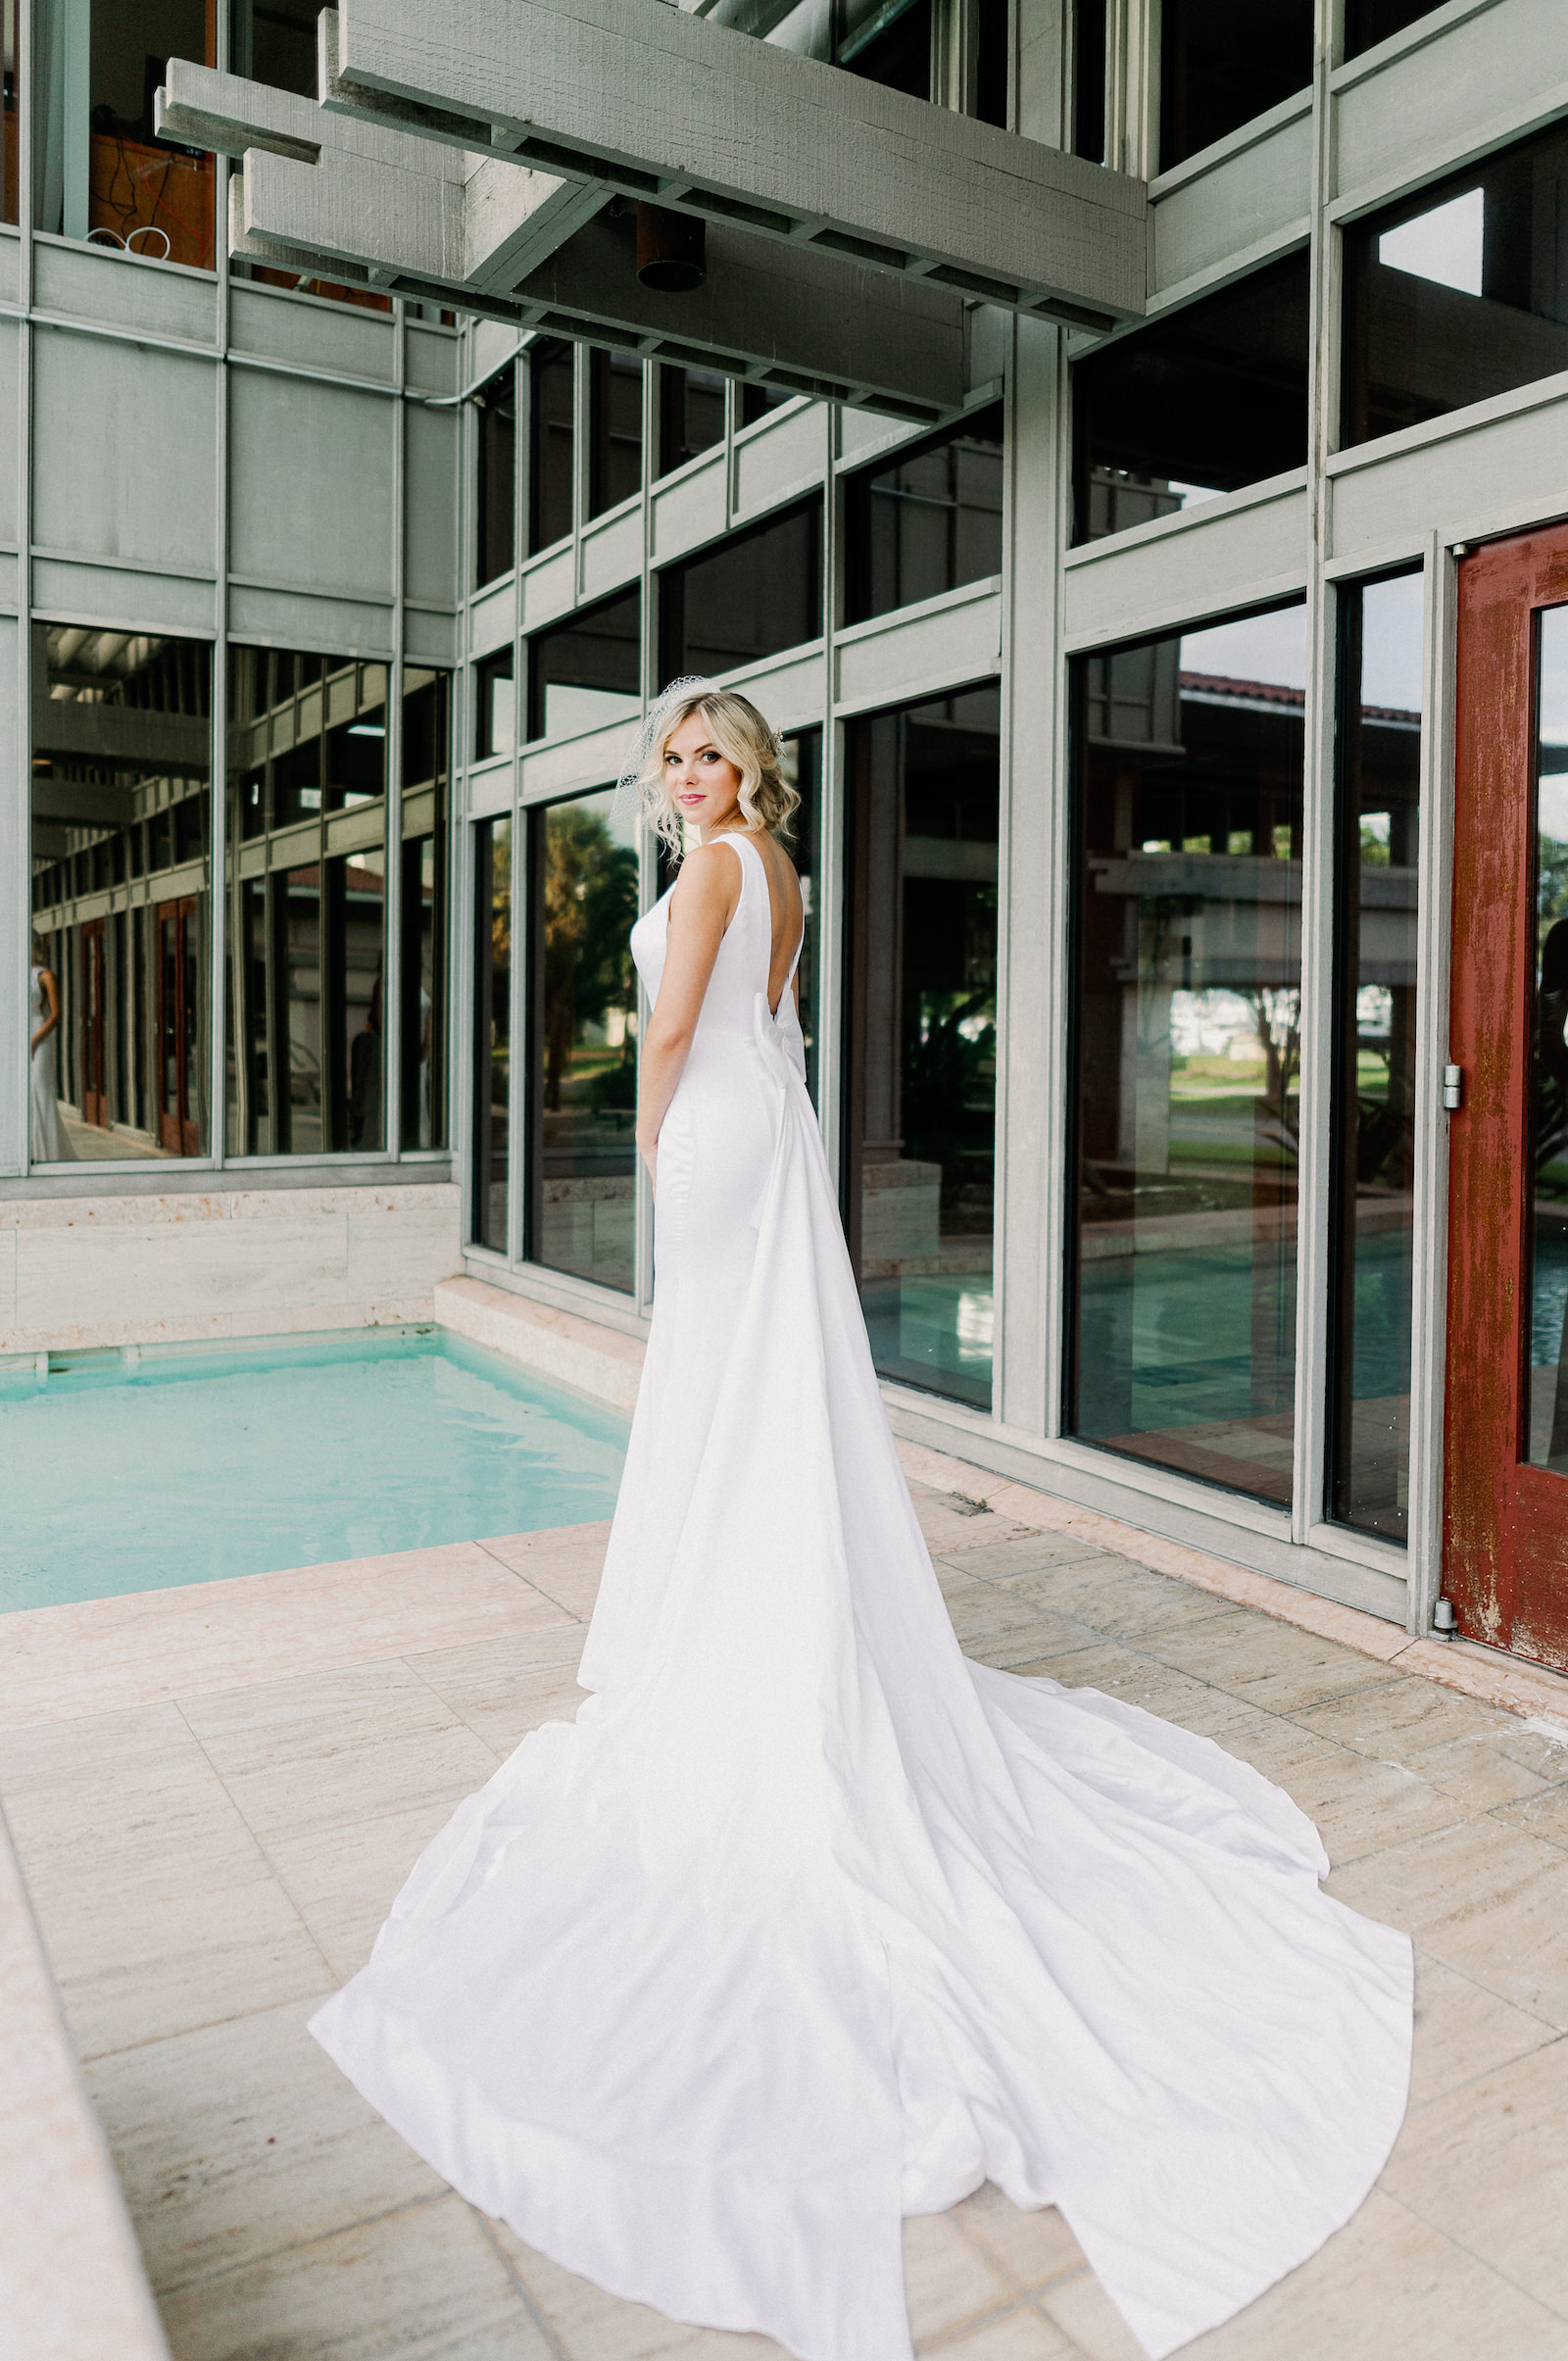 Outdoor Bridal Portrait at St. Pete Wedding Venue The Poynter Institute   LoAdoro Bridal Sleek Fitted Modern Wedding Dress Bridal Gown with Low Back and Detachable Bow Train with Birdcage Veil from Tampa Bridal Shop Truly Forever Bridal   Femme Akoi Beauty Studio   Dewitt for Love Photography